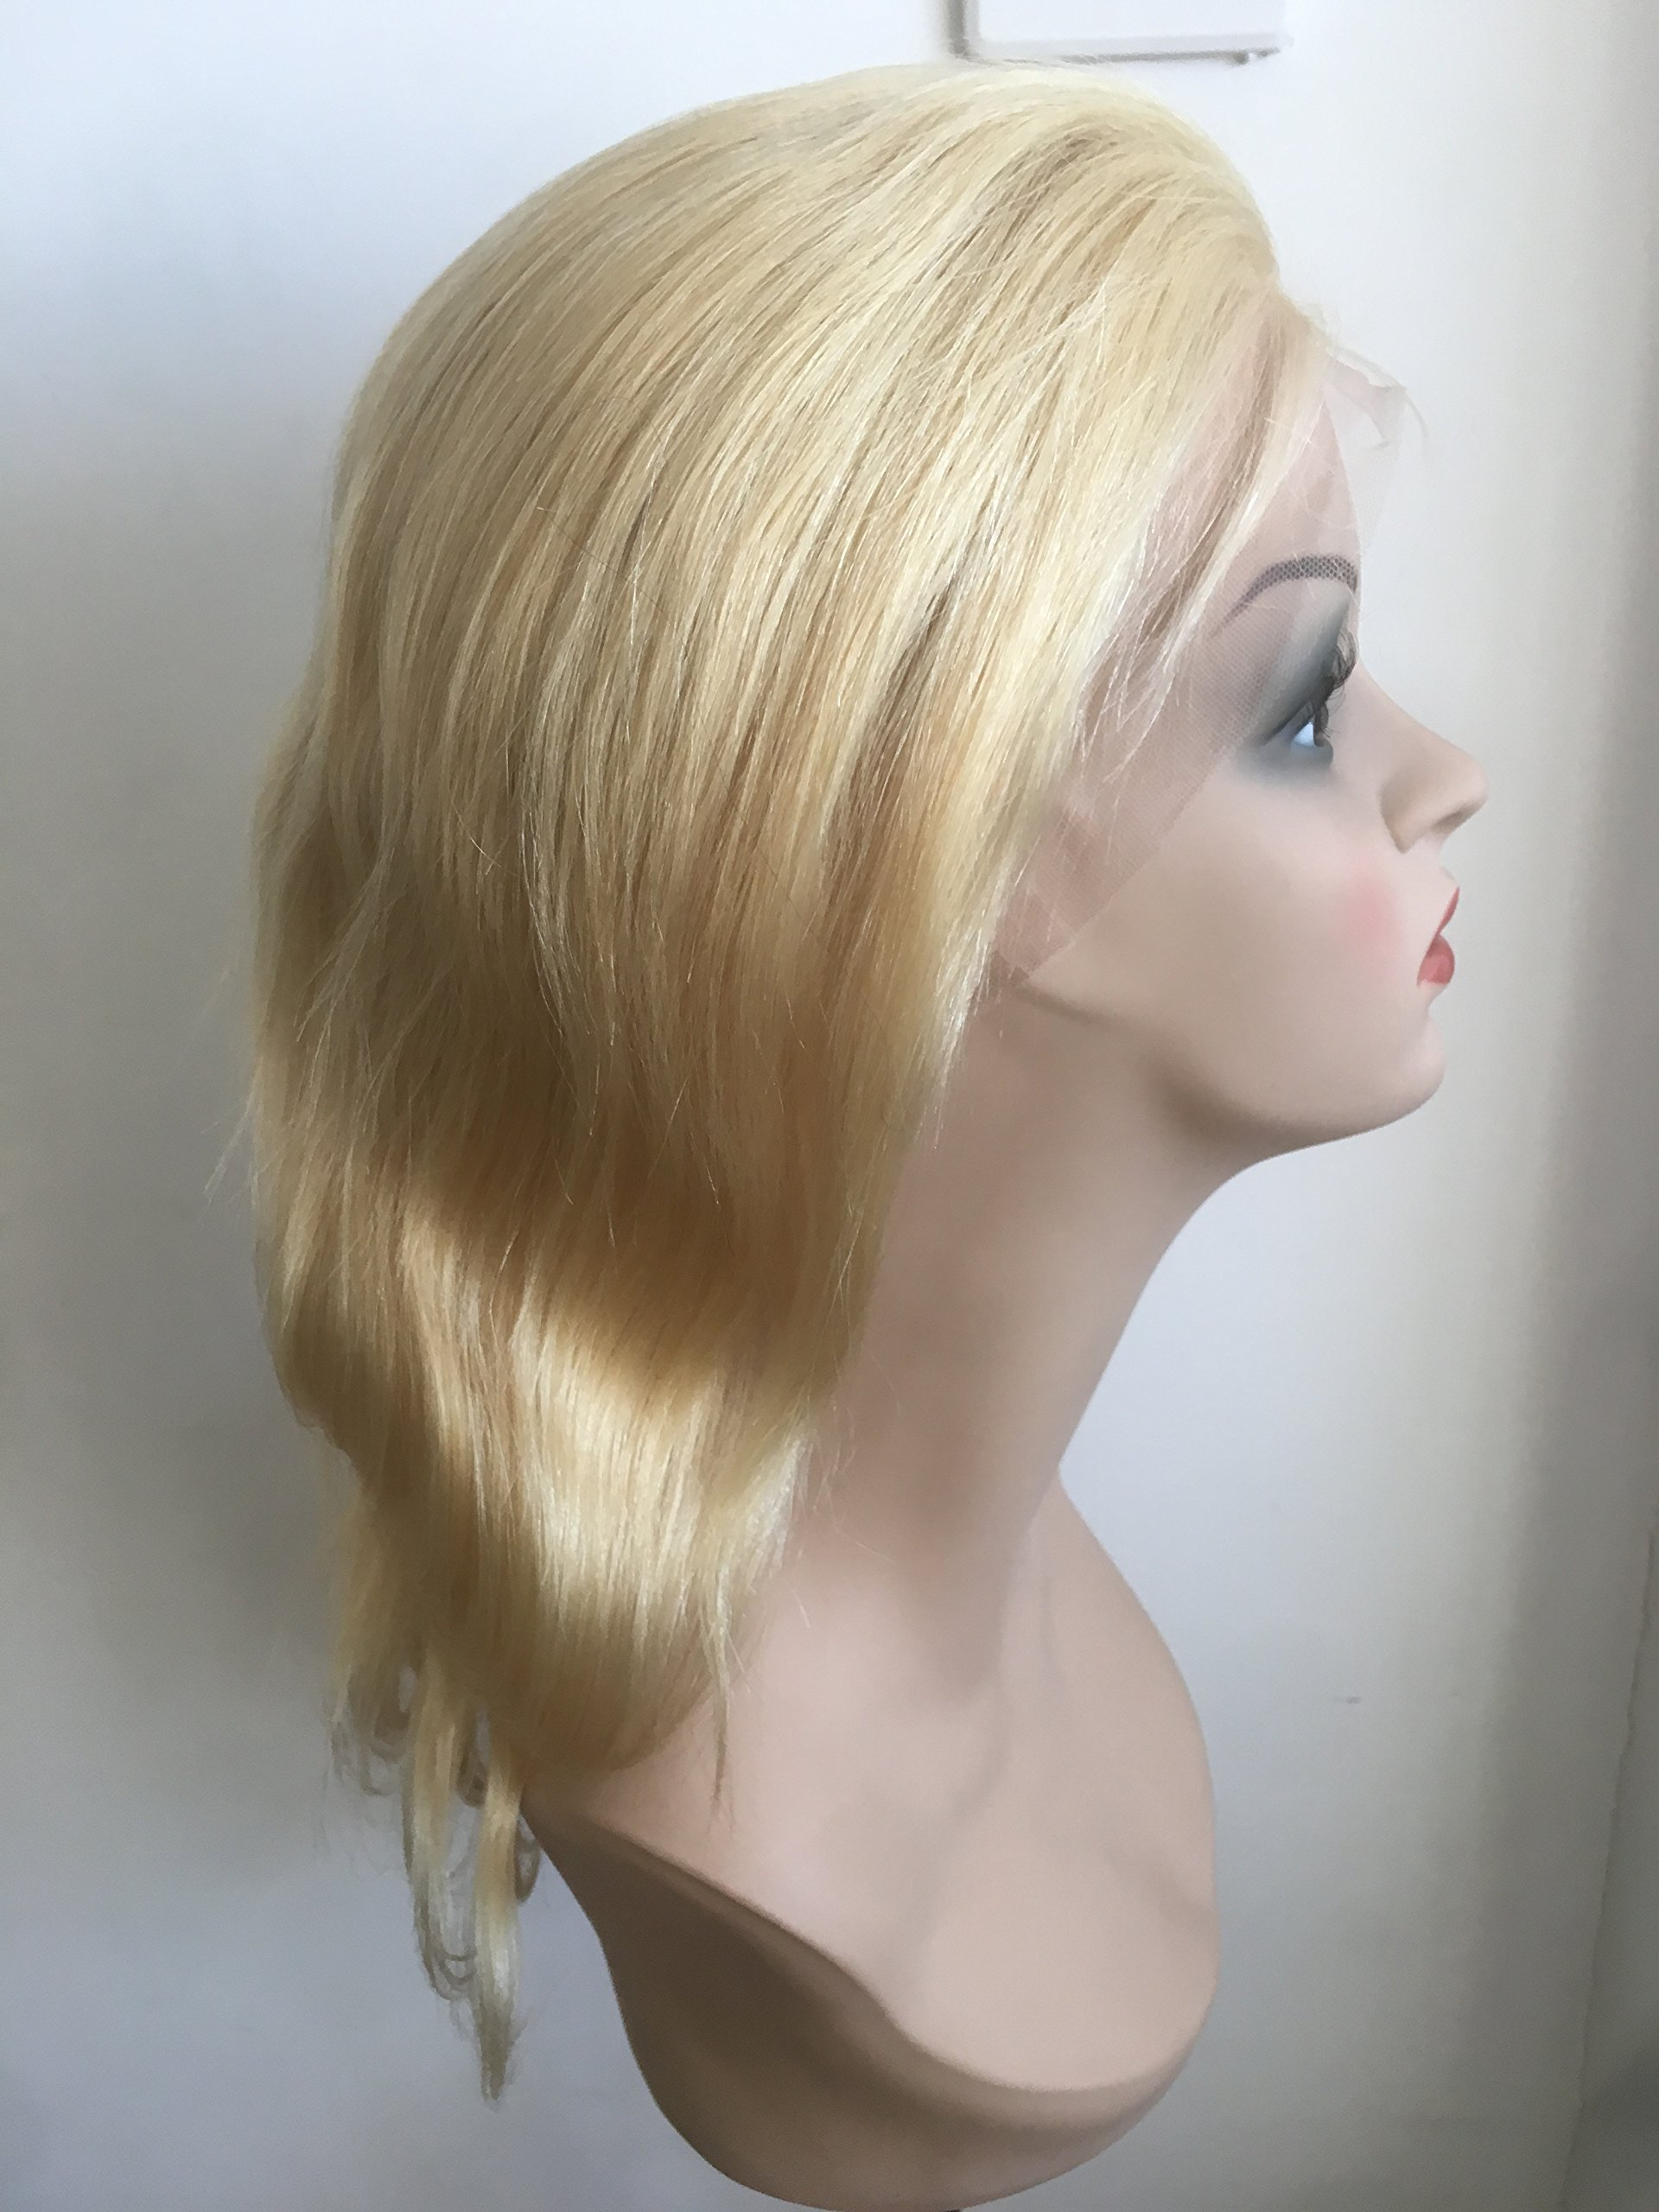 100%10A HUMAN HAIR CHINESE VIRGIN REMI FULL LACE WIG LADY WIG BLOND COLOR (12inch)